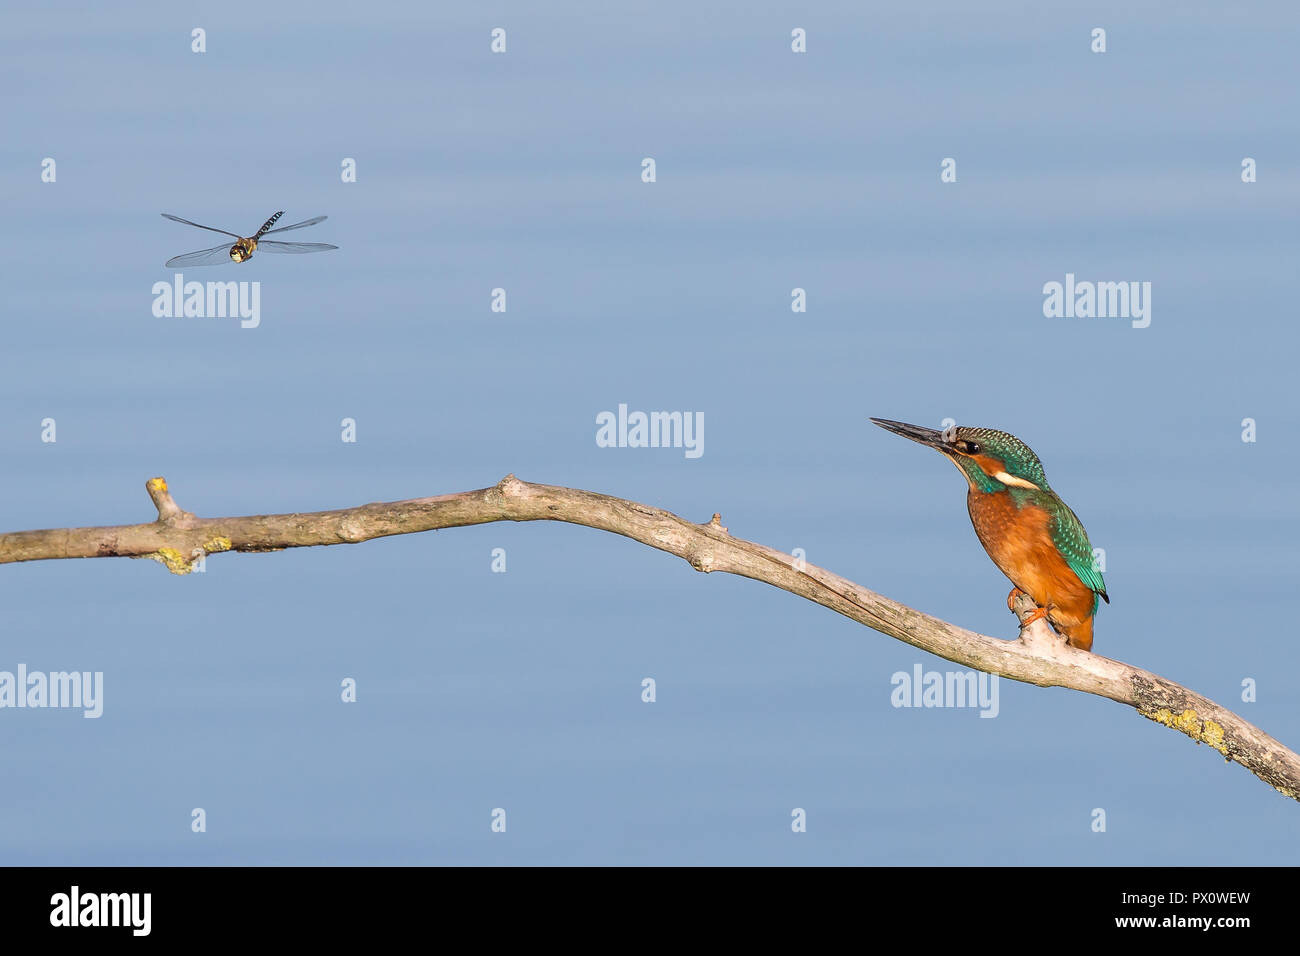 Detailed comical shot of wild common kingfisher (Alcedo atthis) perched on branch (side-on) watching dragonfly hovering in front of him. Dinner time! - Stock Image